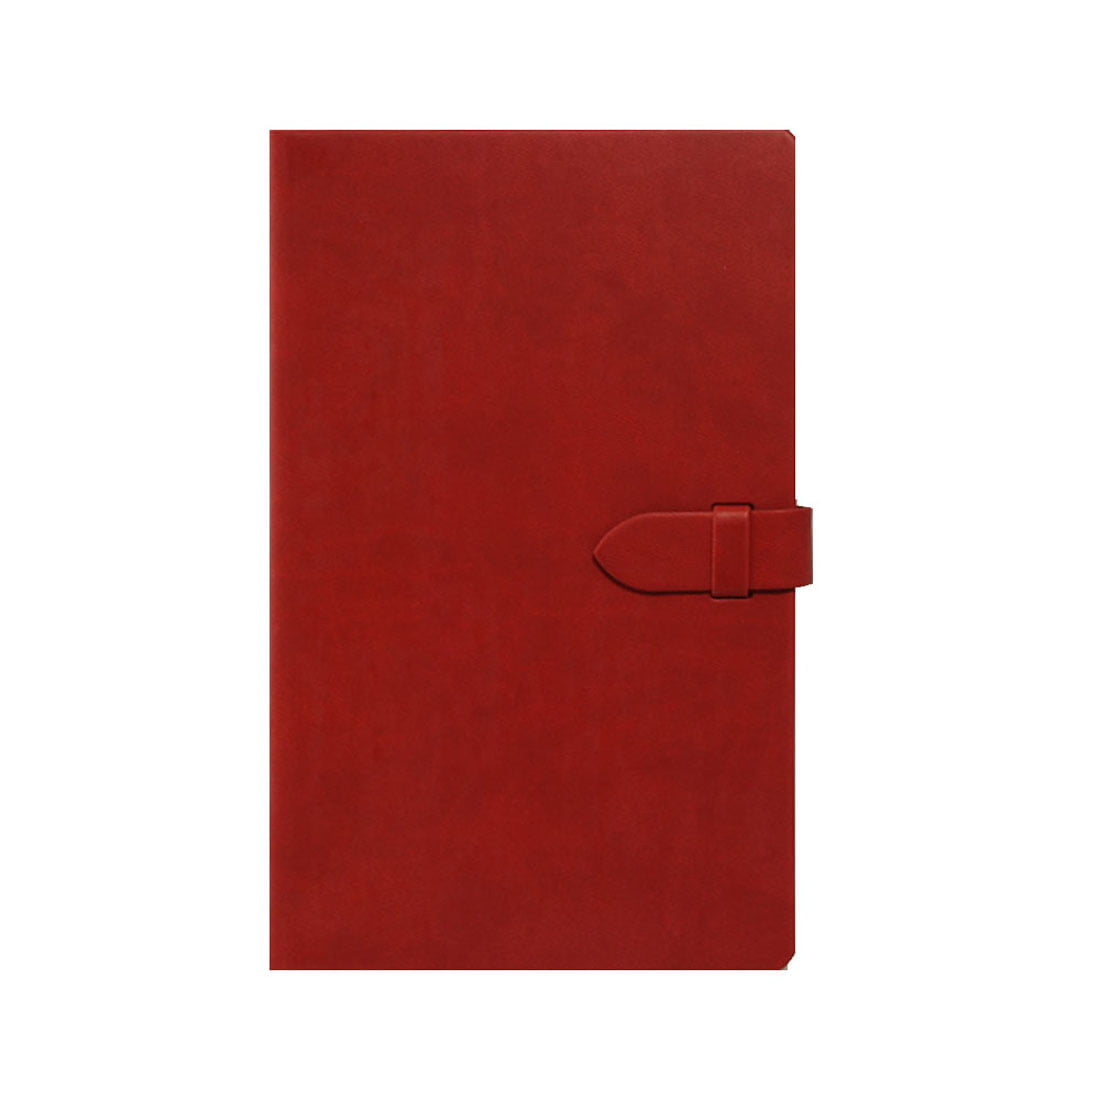 Medium pocket notebook with round corners and ruled pages.